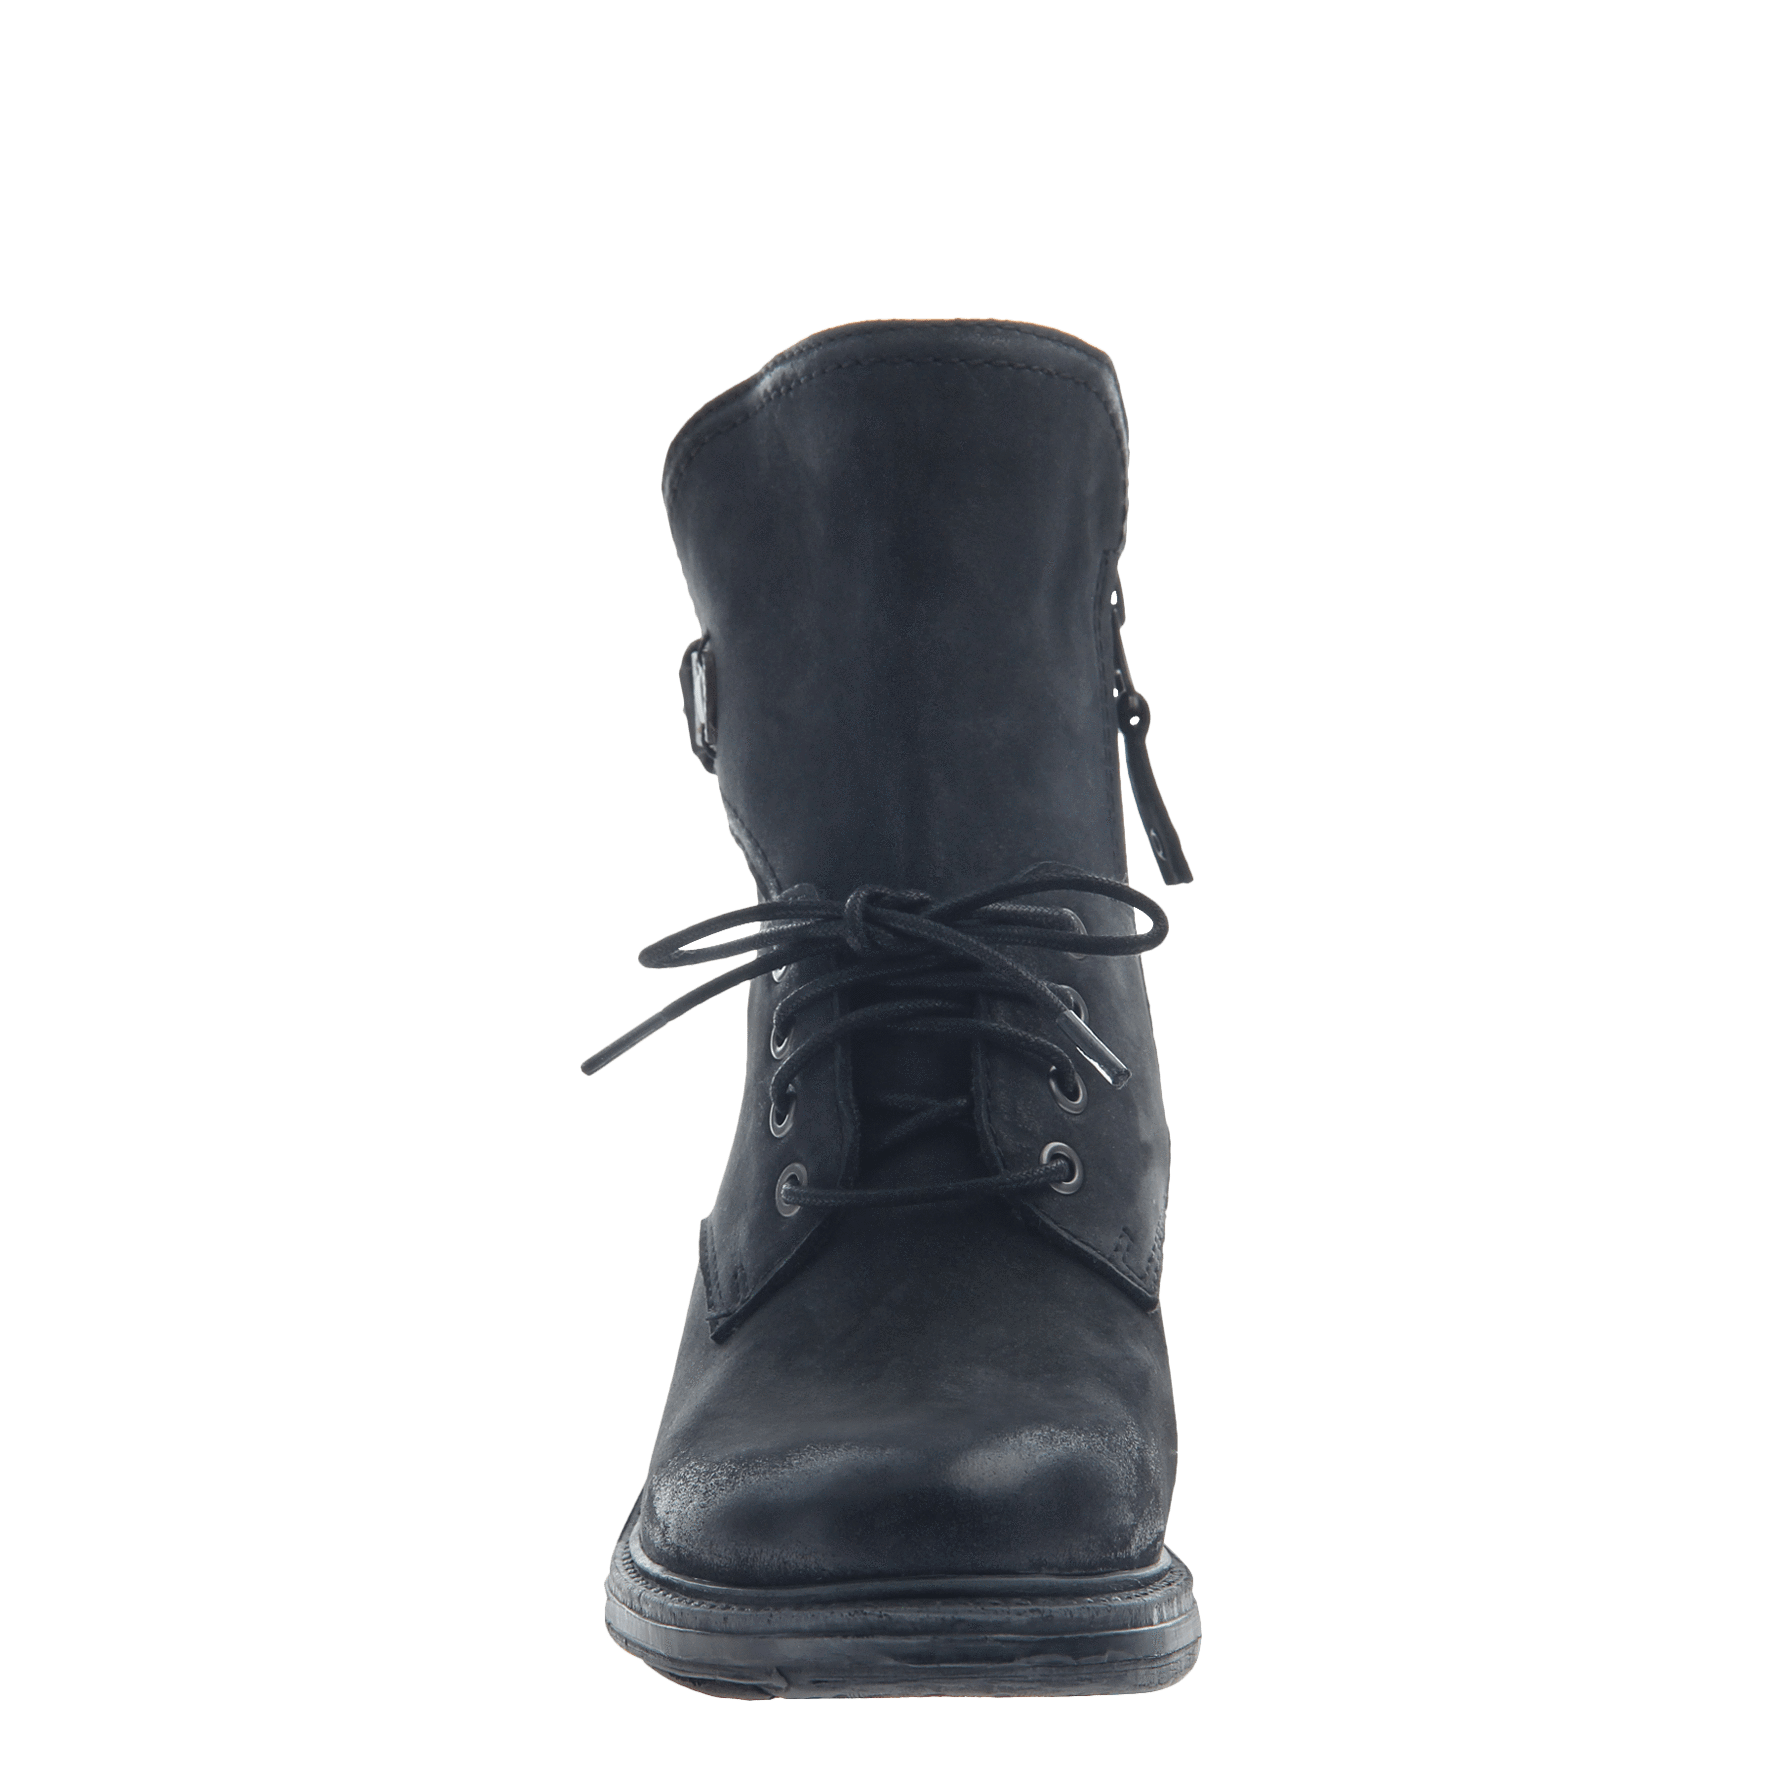 Womens boots png. Gallivant in black mid